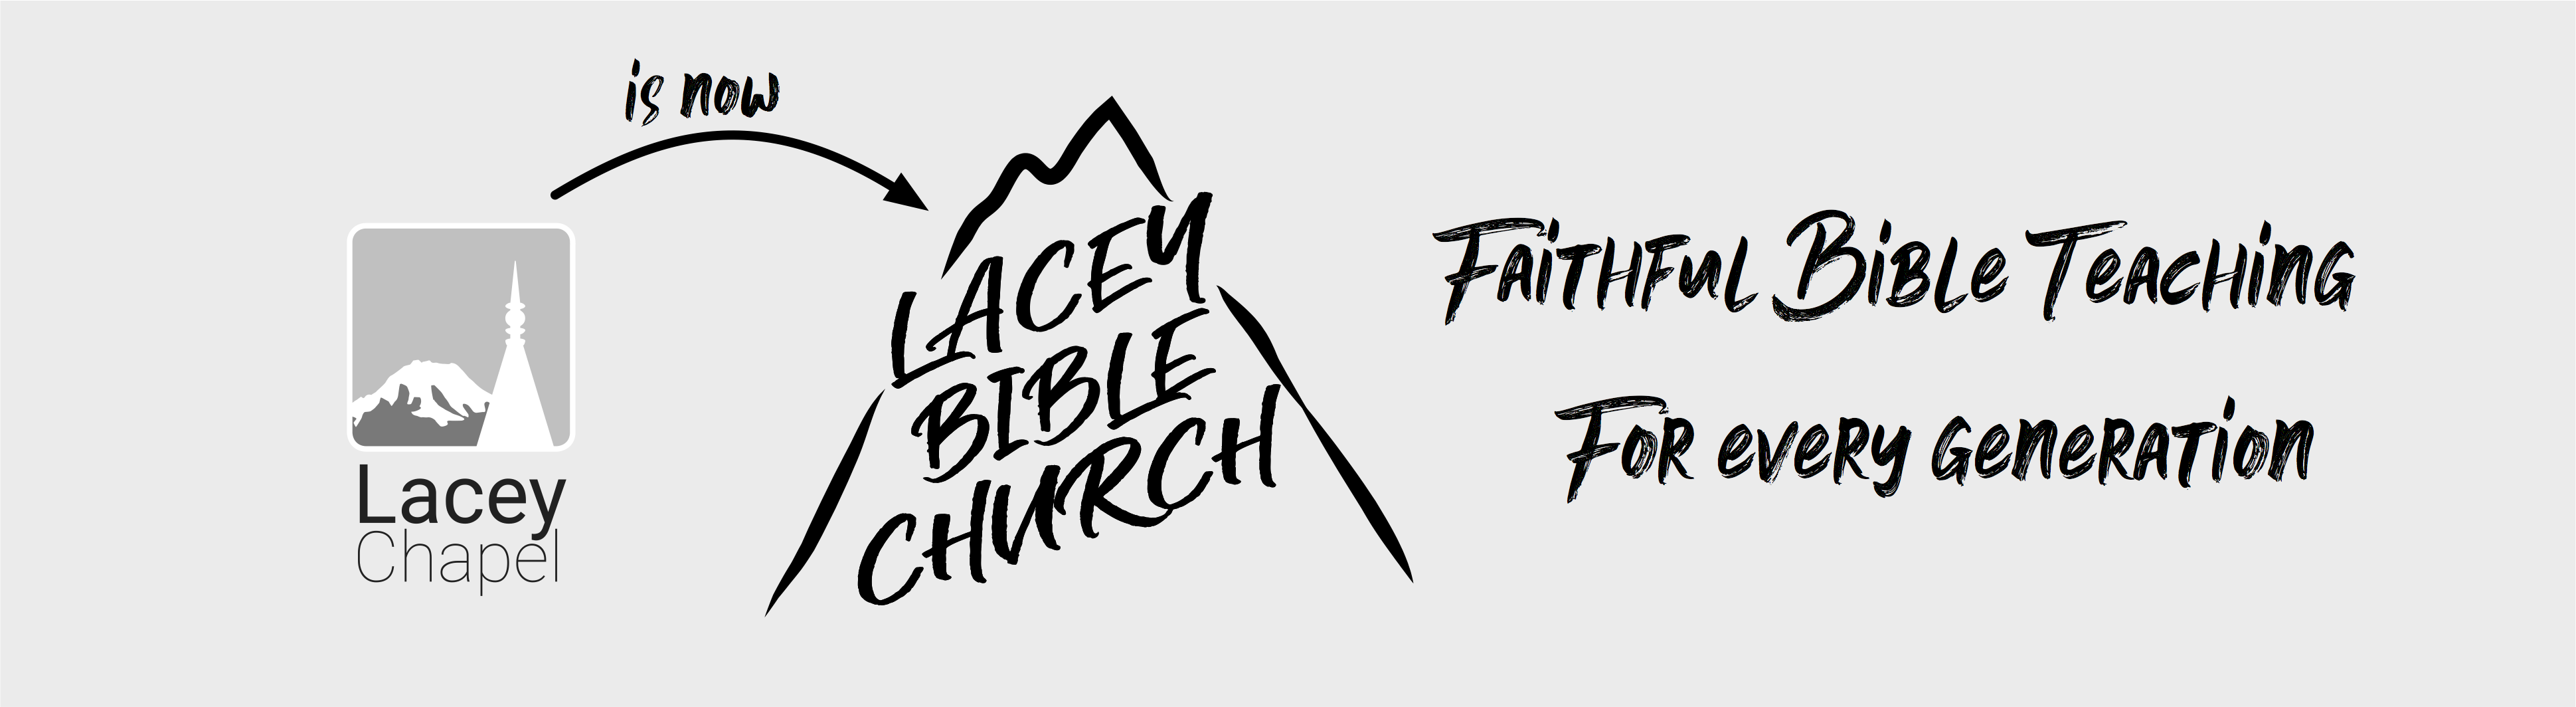 Lacey Chapel is now Lacey Bible Church